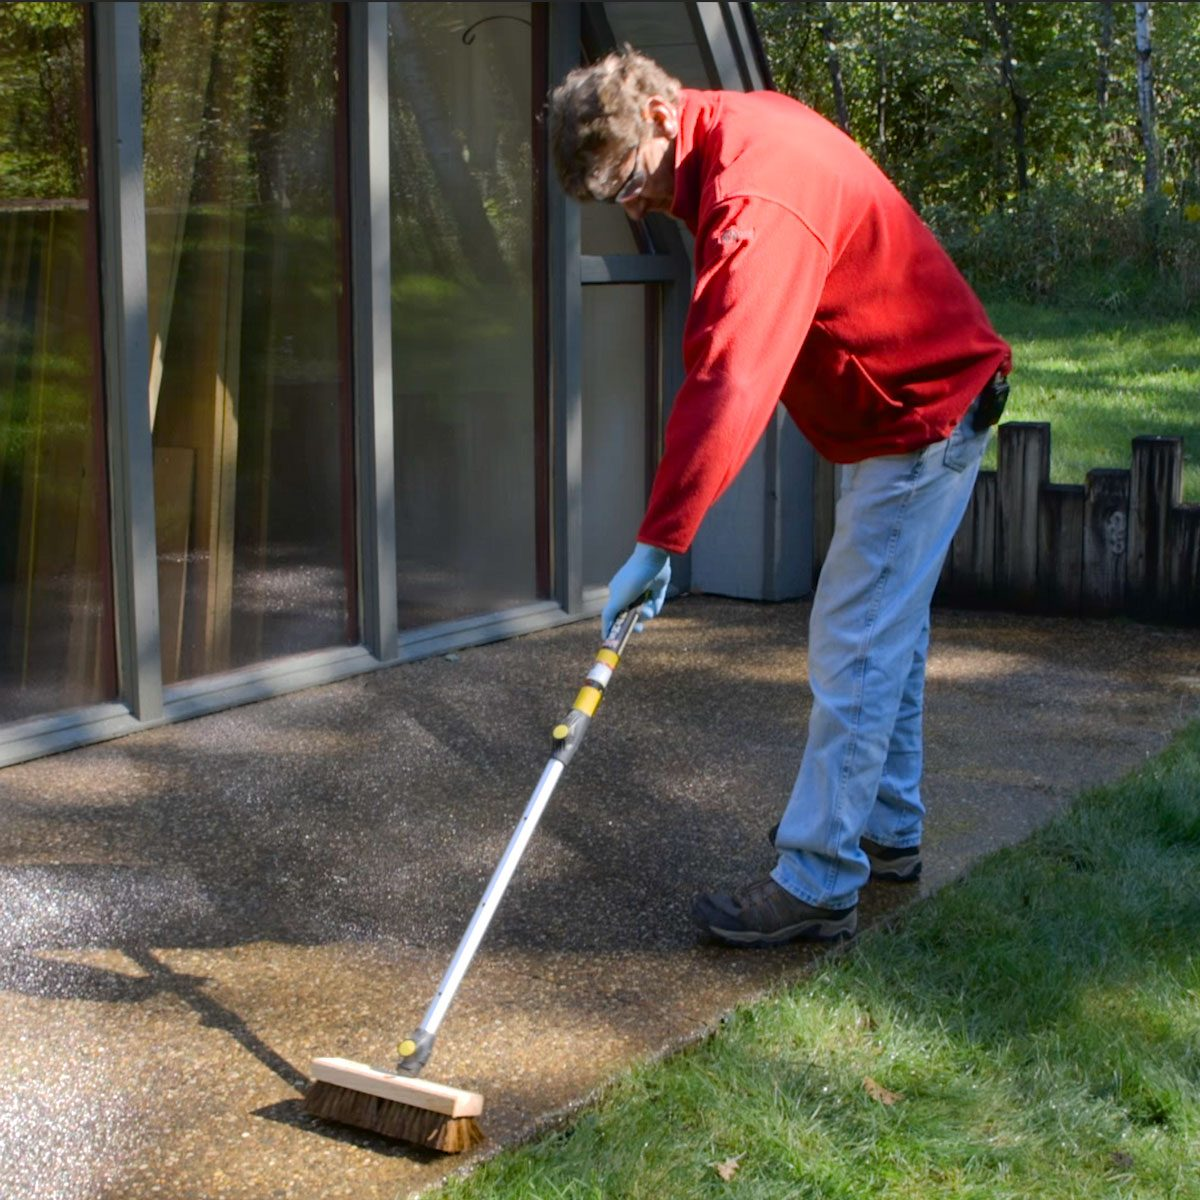 scrubbing concrete with stiff brush